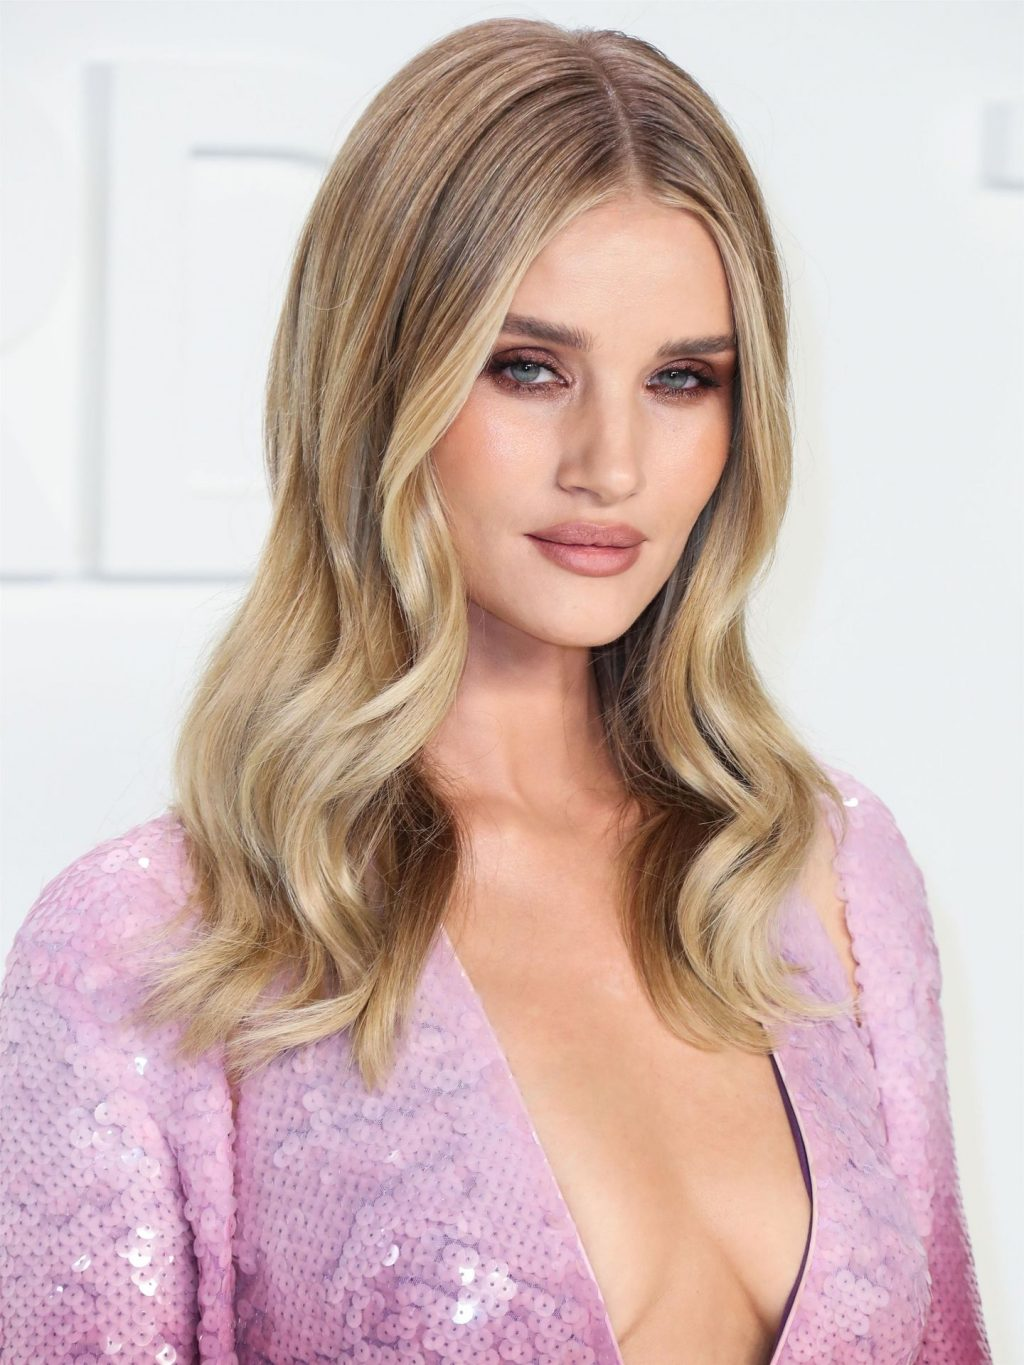 Rosie Huntington Whiteley Sexy The Fappening Blog 51 1024x1365 - Rosie Huntington-Whiteley Shows Her Cleavage at the Tom Ford Fashion Show (115 Photos)